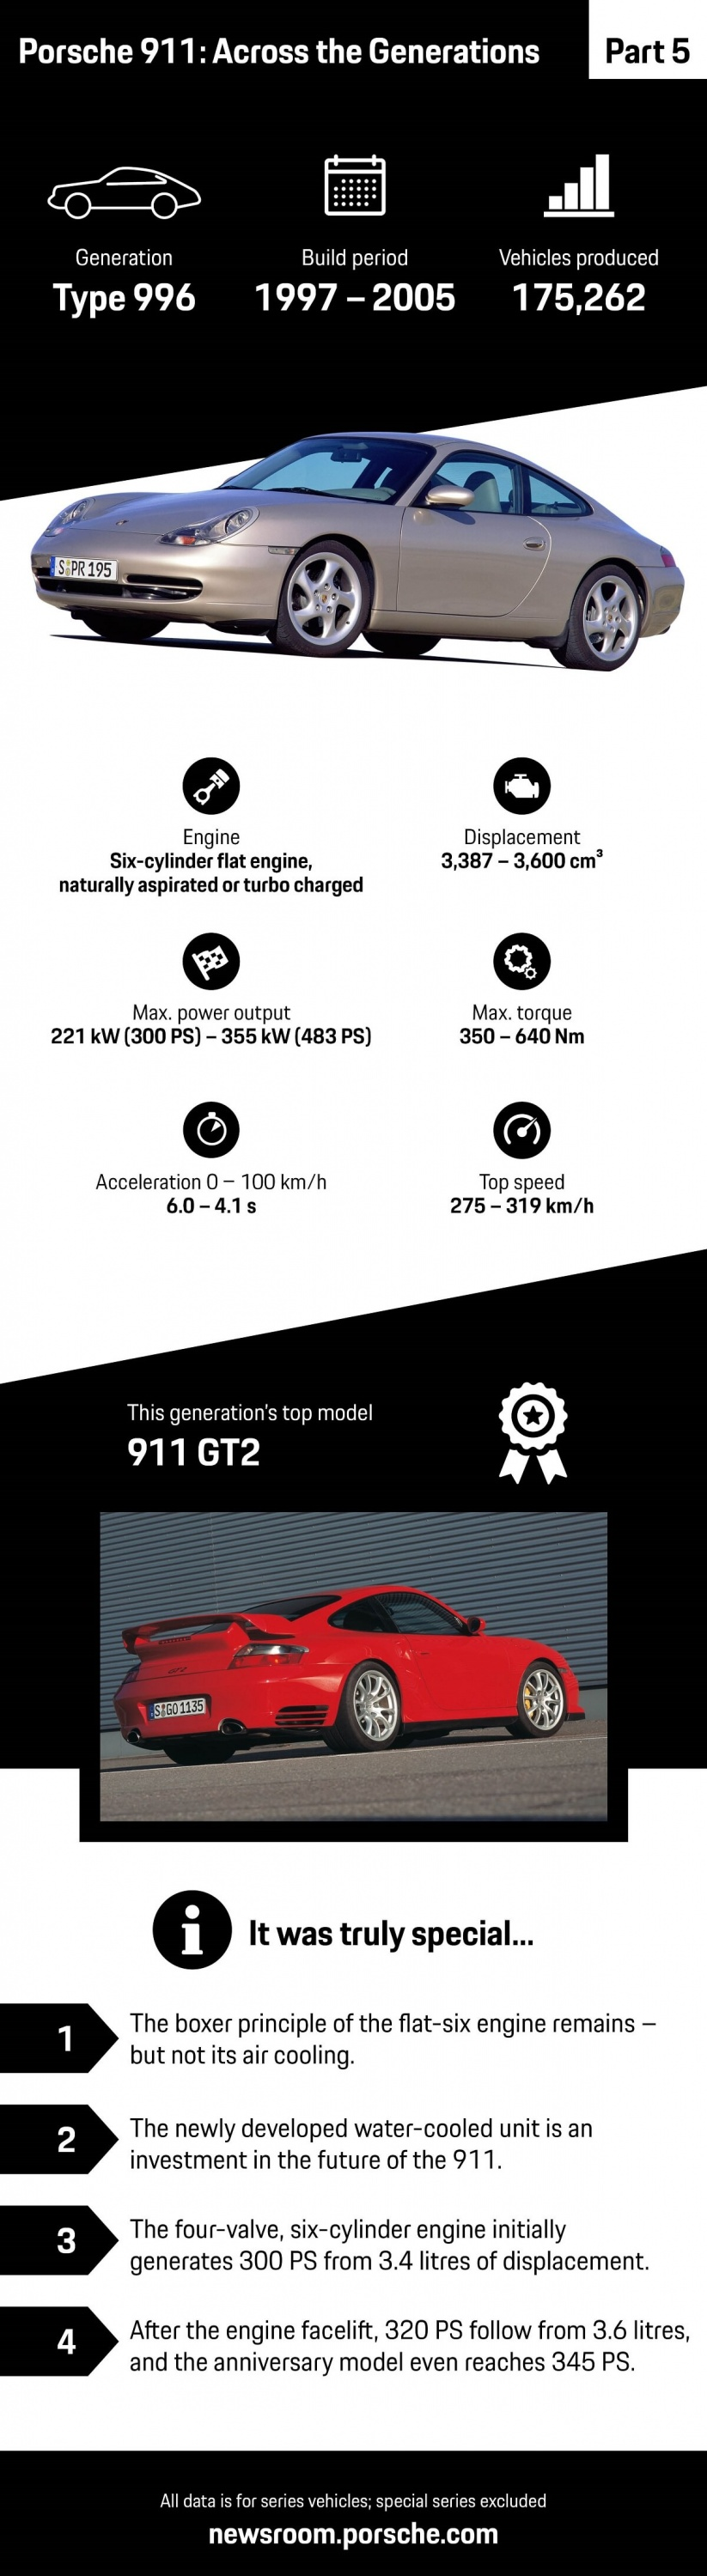 1136914_porsche_911_across_the_generations_part_5_infographic_2018_porsche_ag.jpg